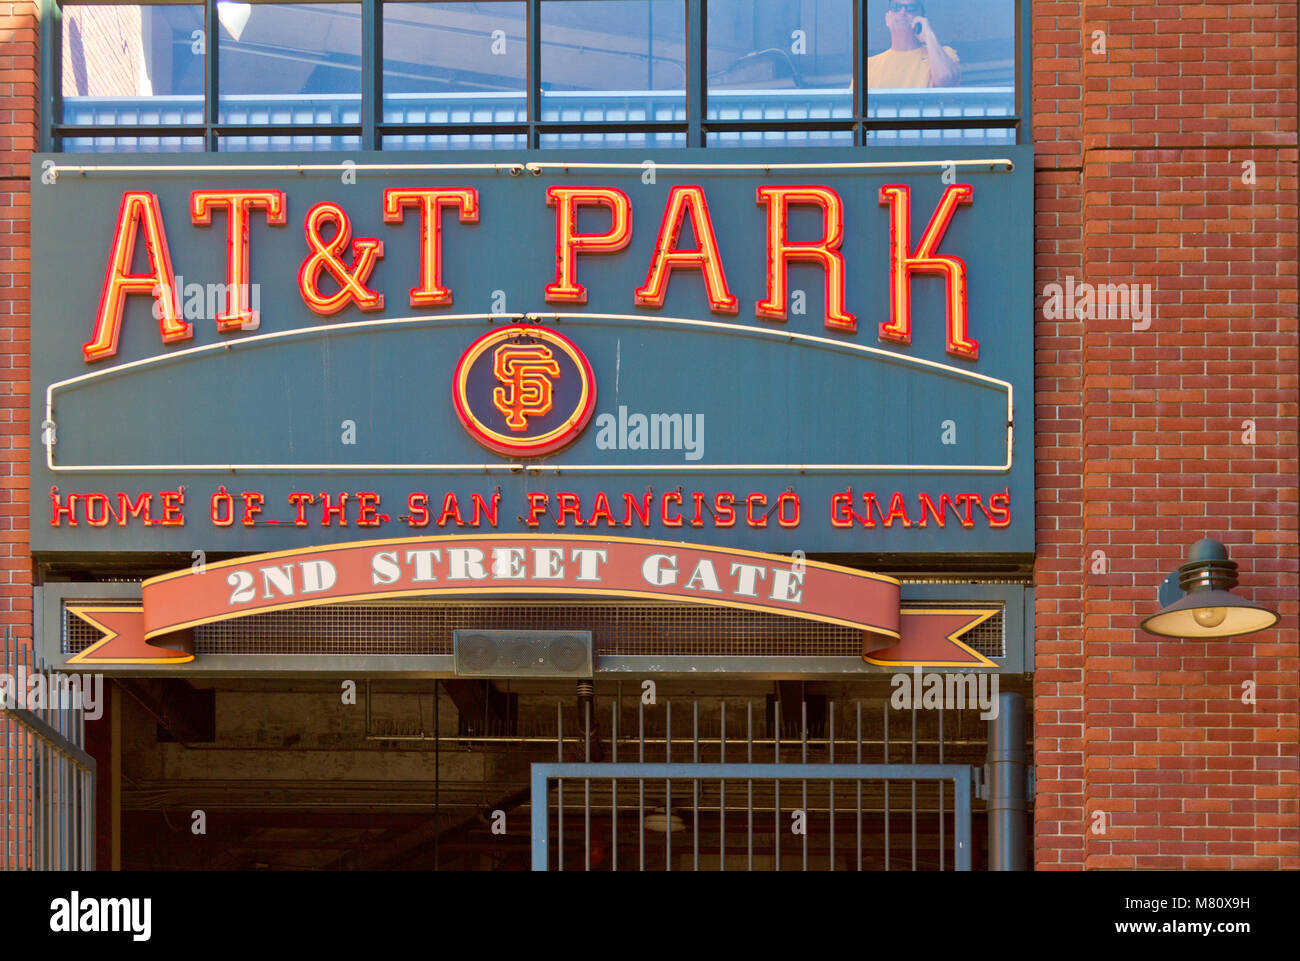 View of 2nd Street gate to AT&T Park, home of the San Francisco Giants. - Stock Image